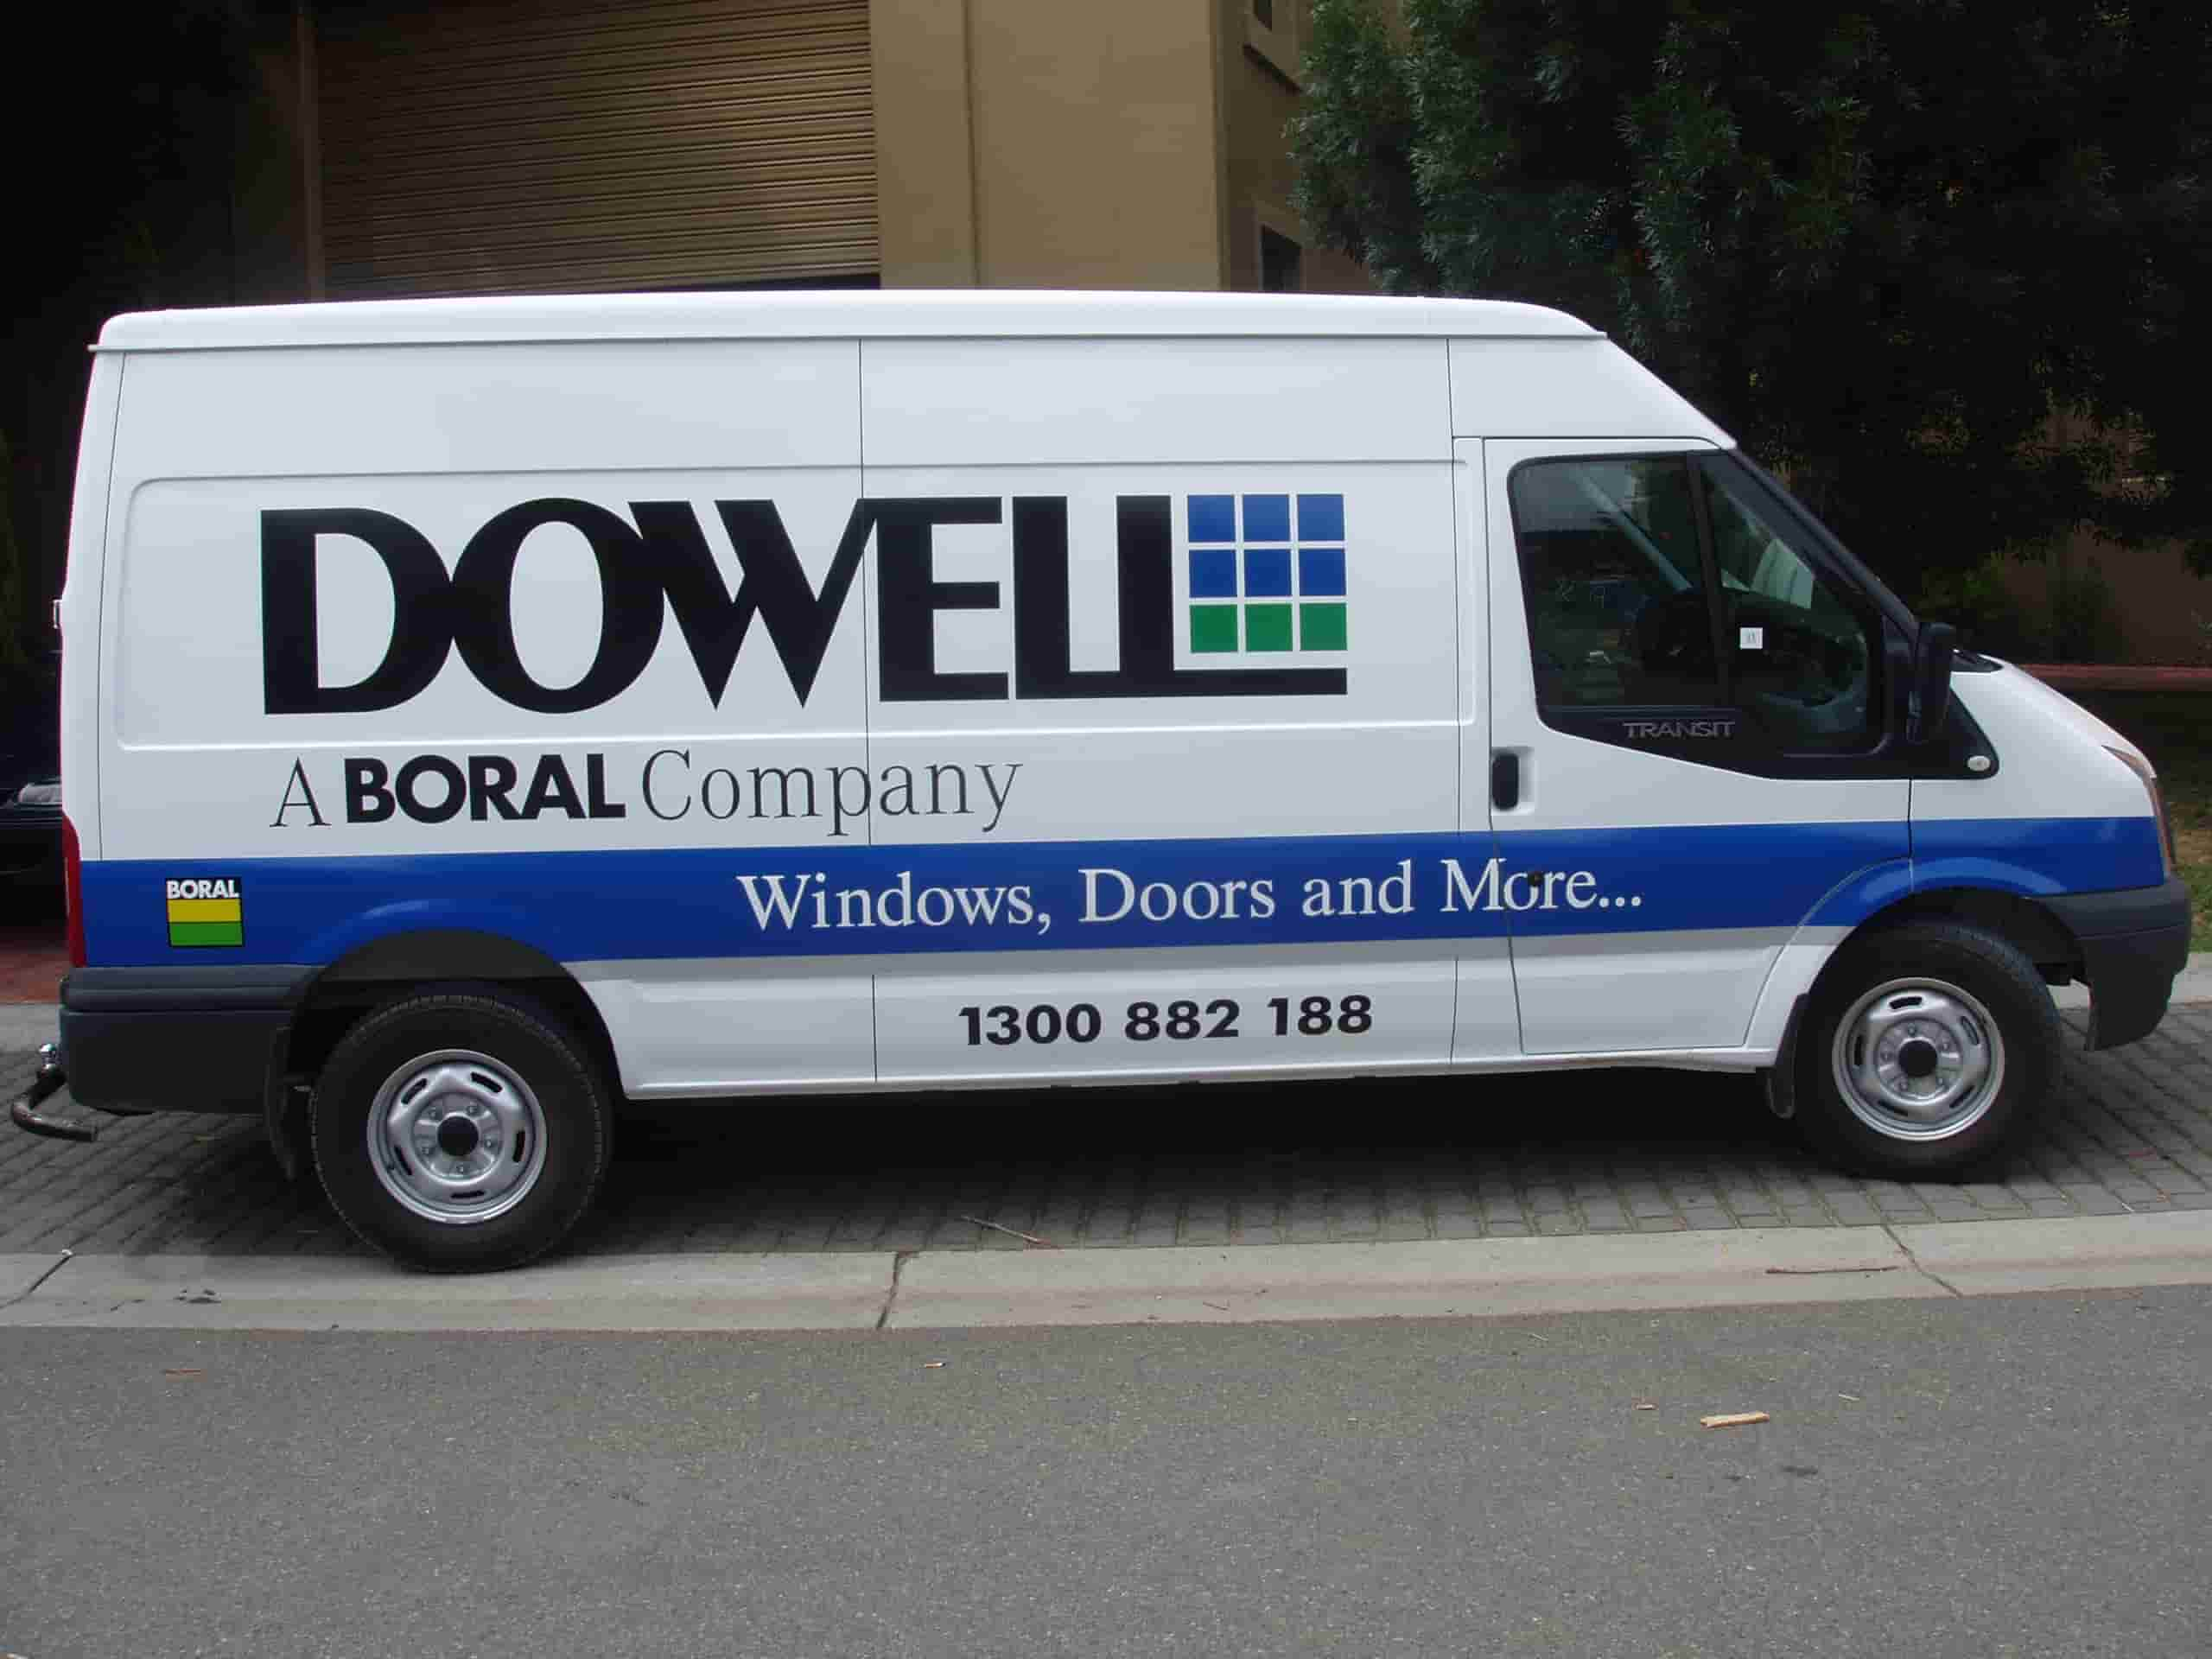 Vehicle signage dowell